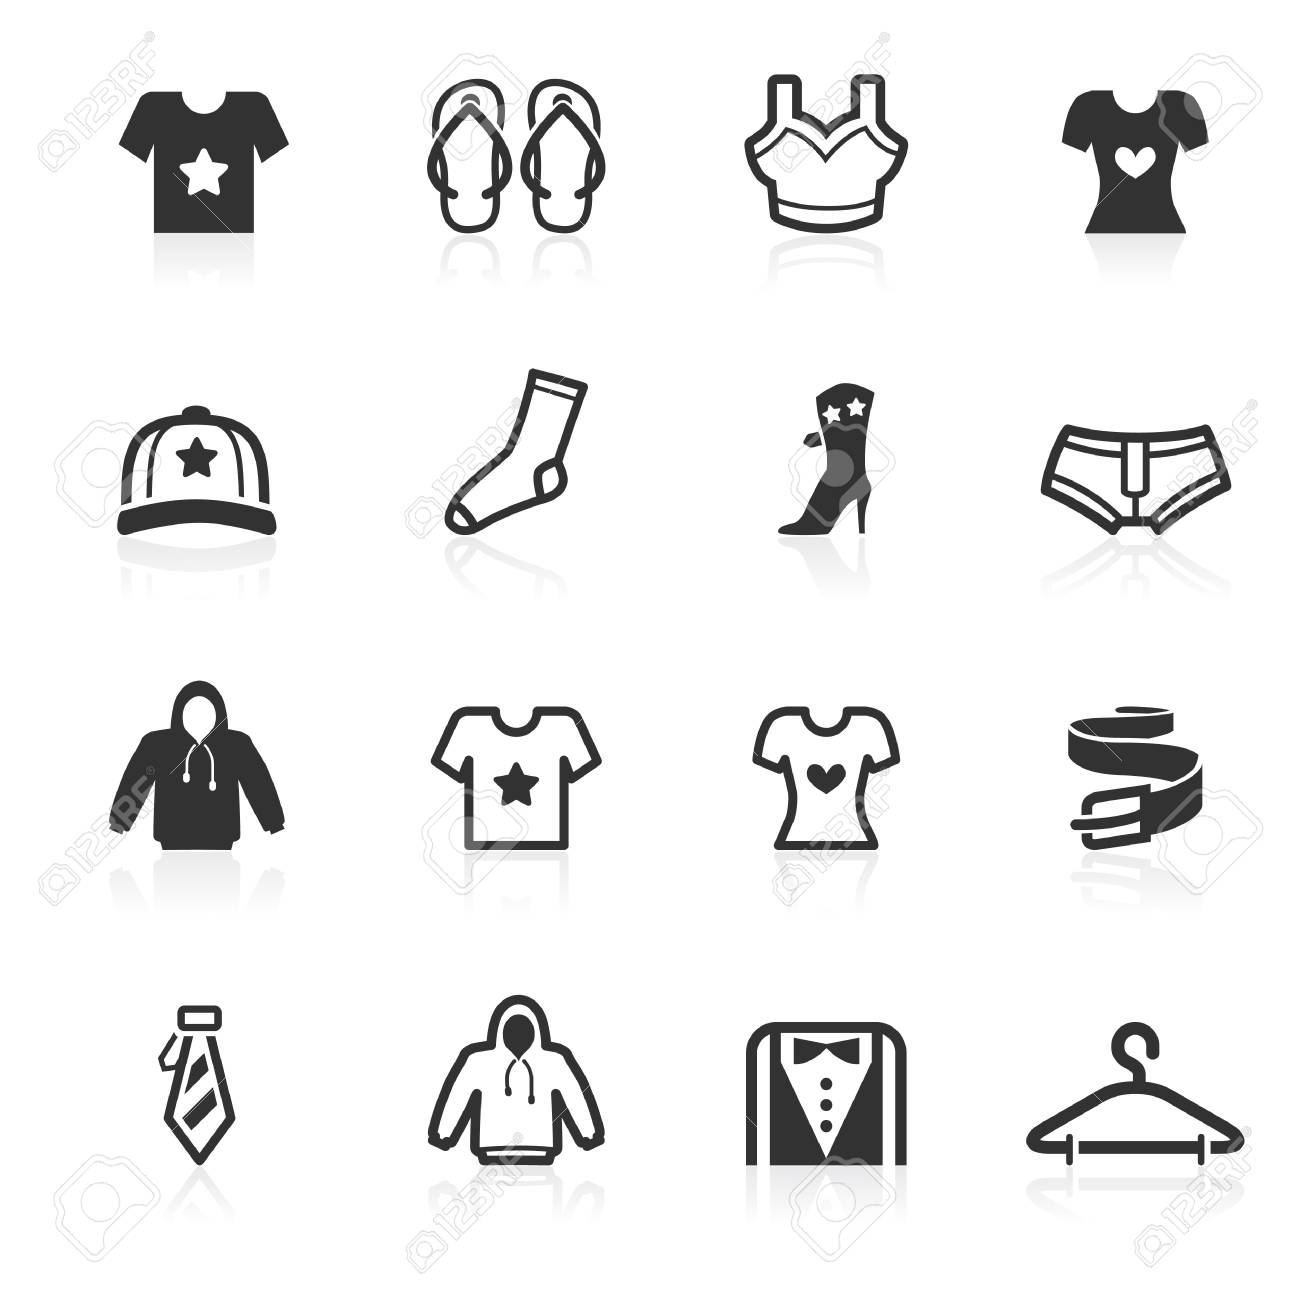 Fashion and apparel vector icons set isolated over white background